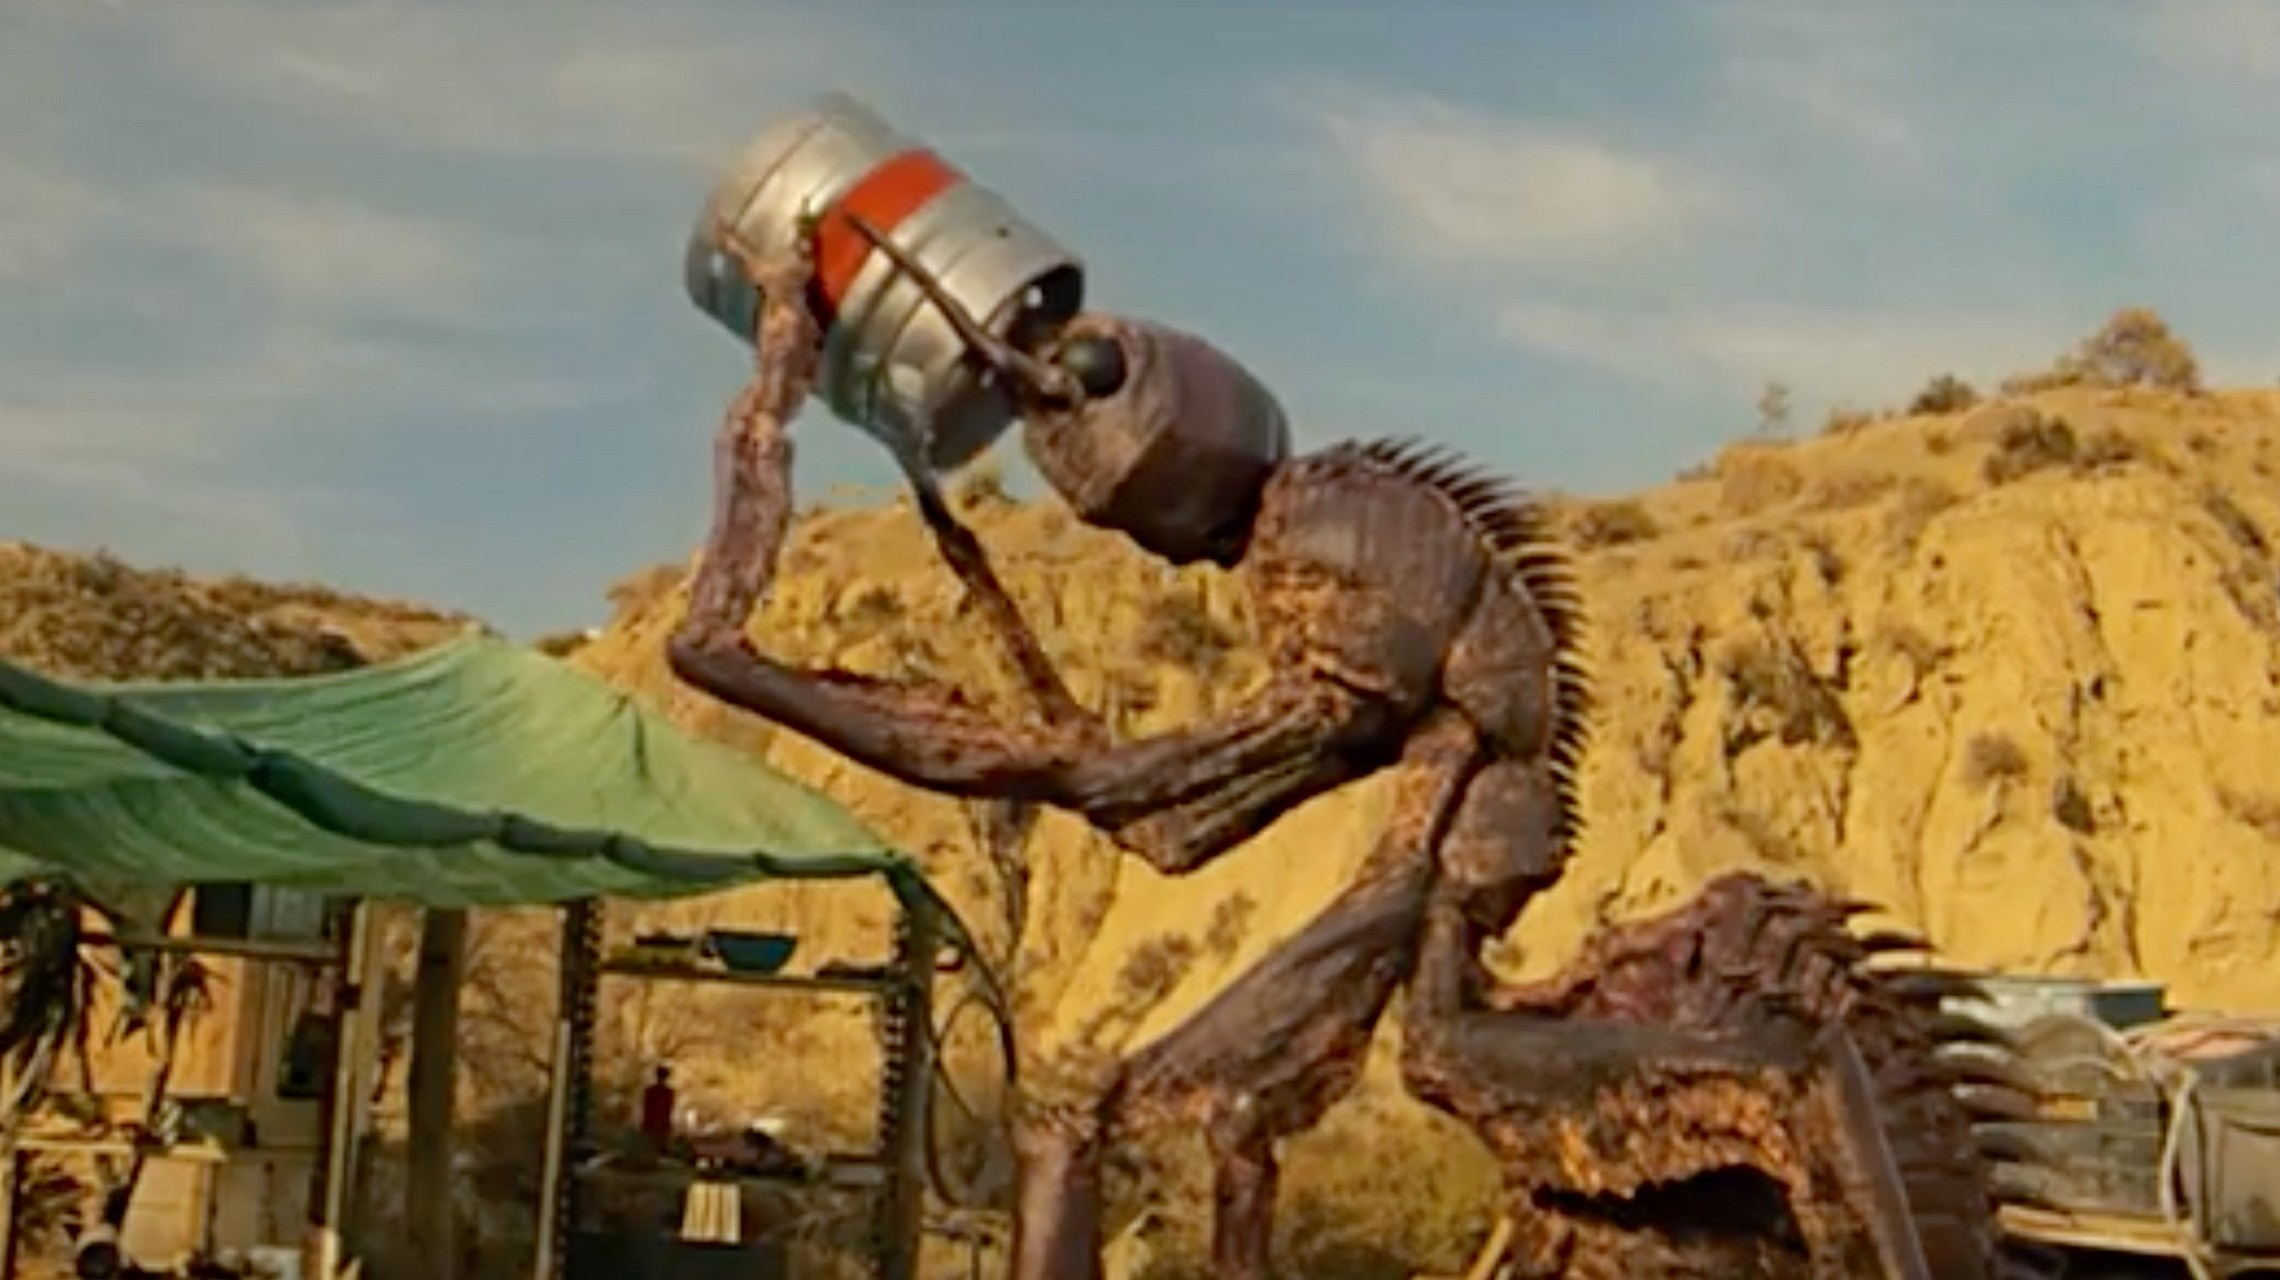 http://www.syfy.com/syfywire/beer-loving-giant-ants-terrorize-teens-in-trailer-for-it-came-from-the-desert